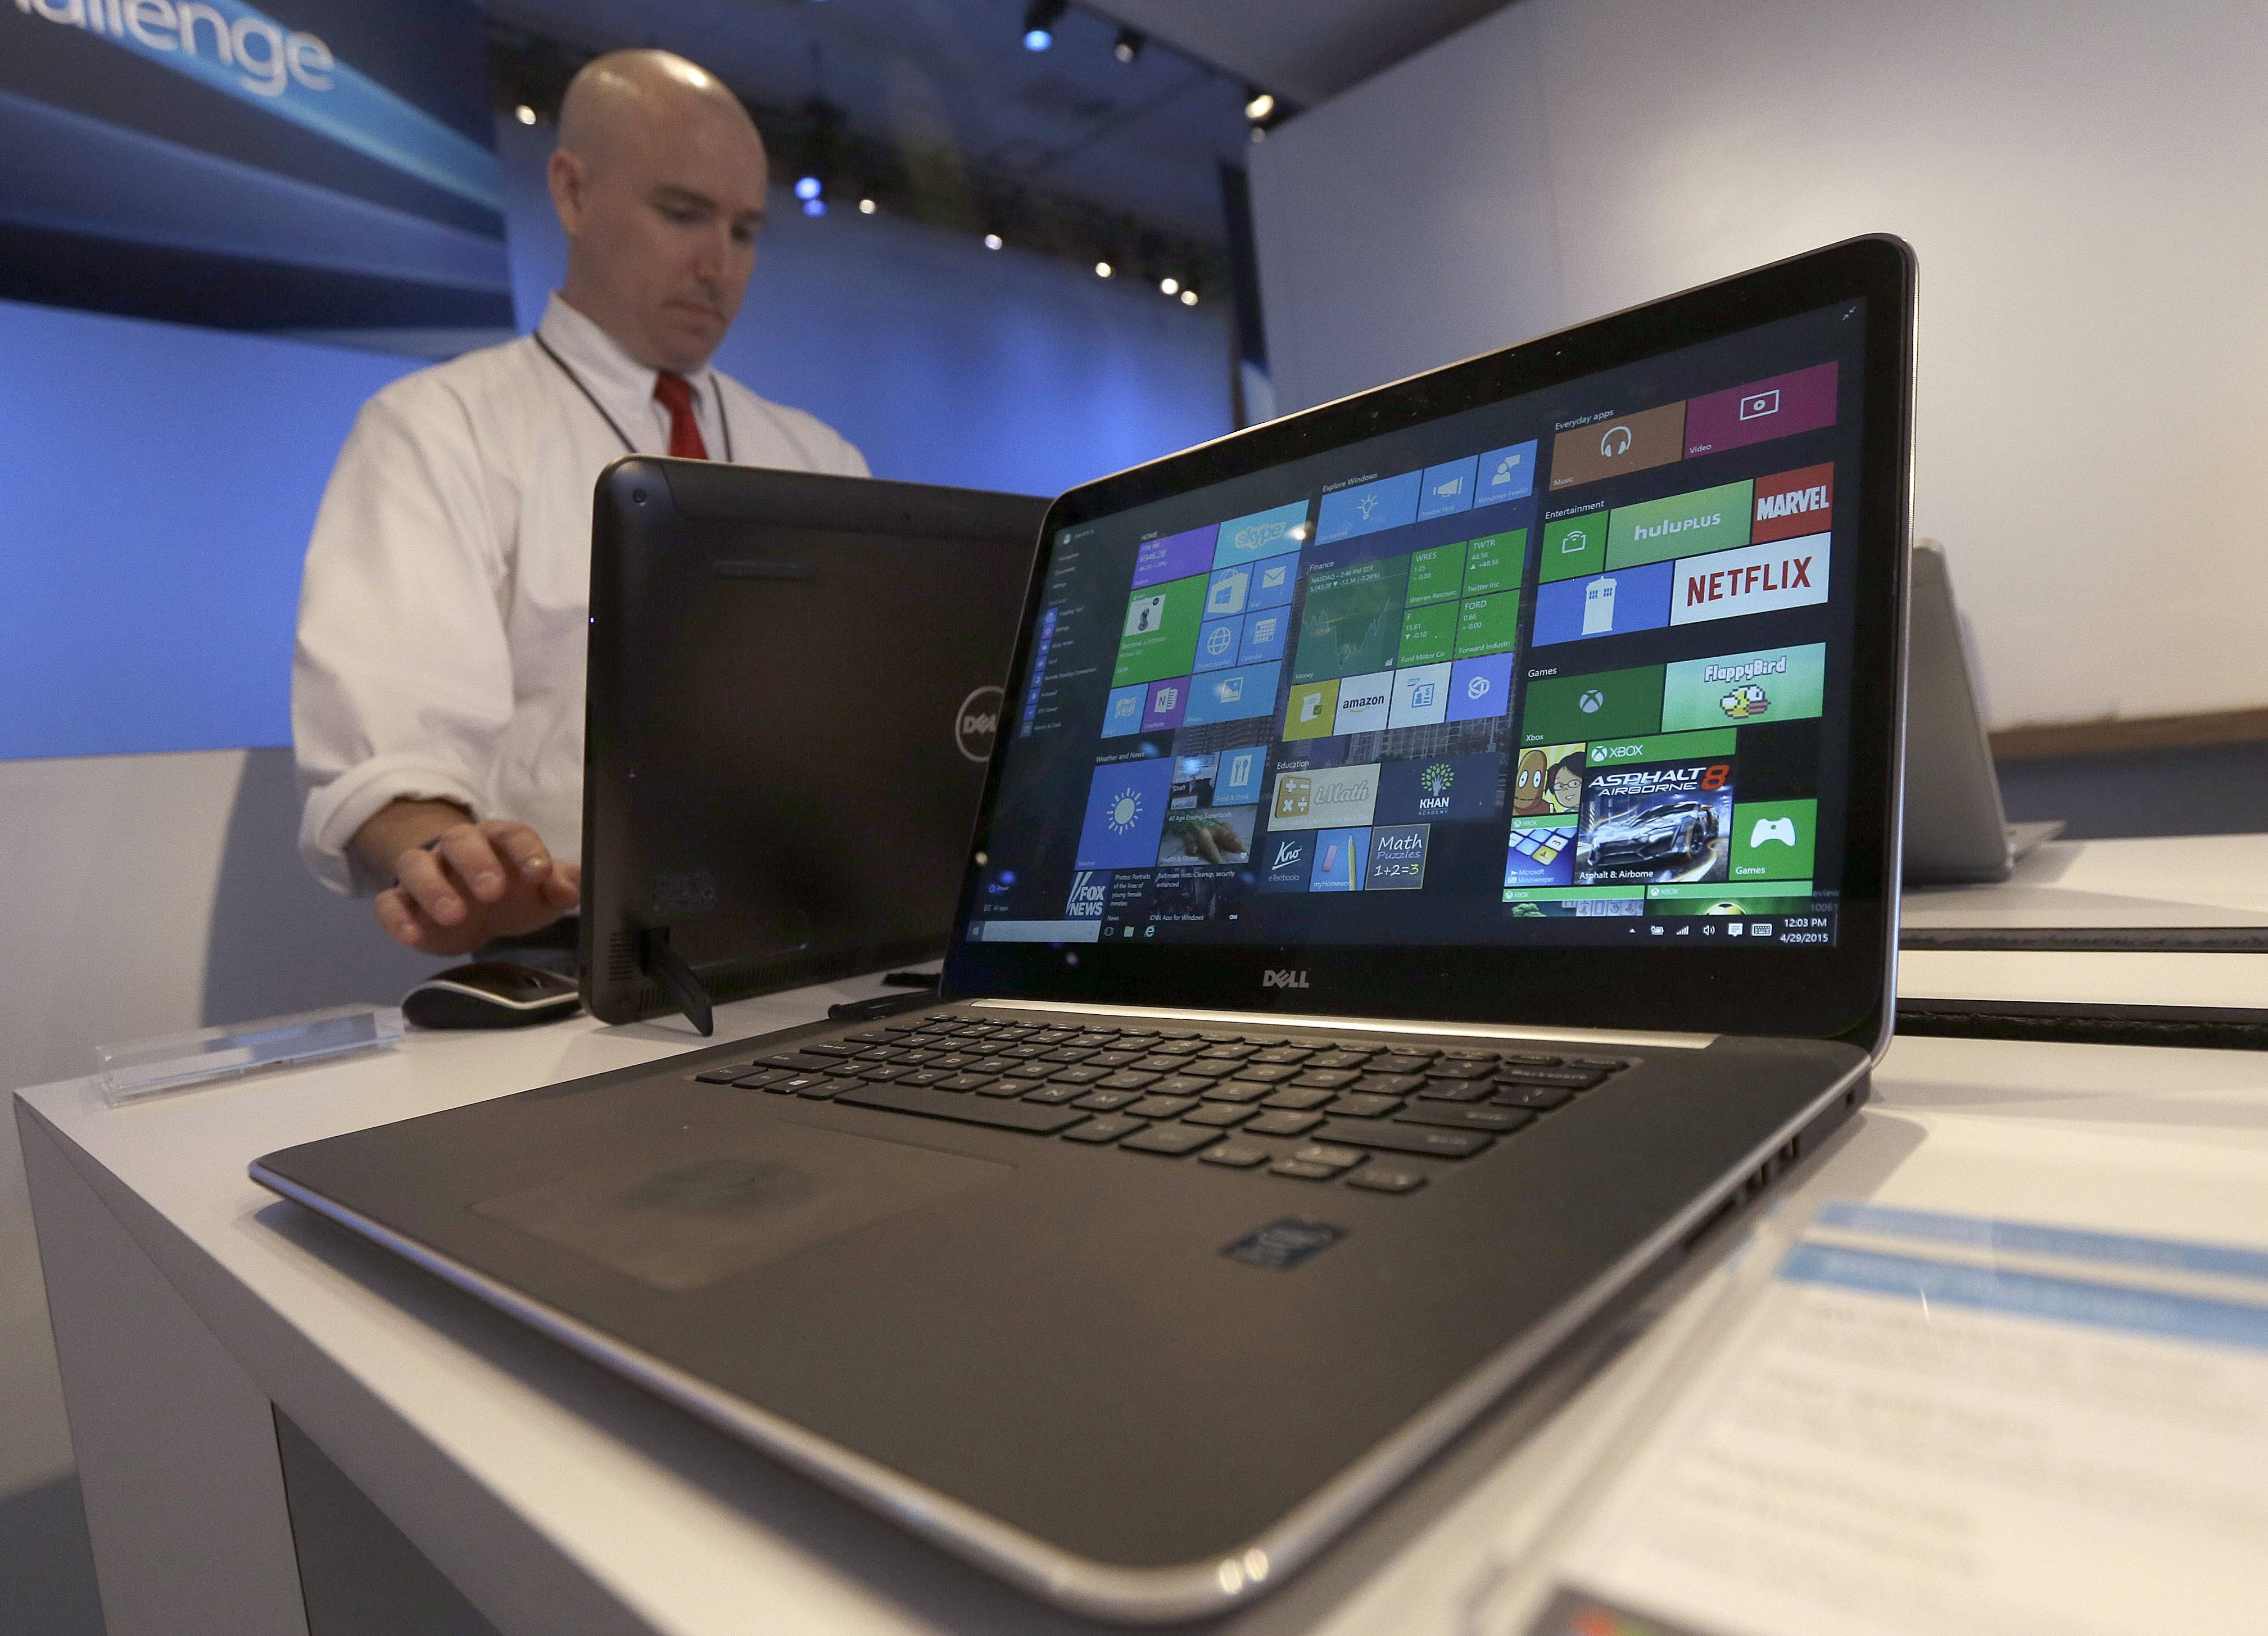 Microsoft's new Windows 10 operating system debuted Wednesday, as the longtime leader in PC software struggles to carve out a new role in a world where people increasingly rely on smartphones, tablets and information stored online.